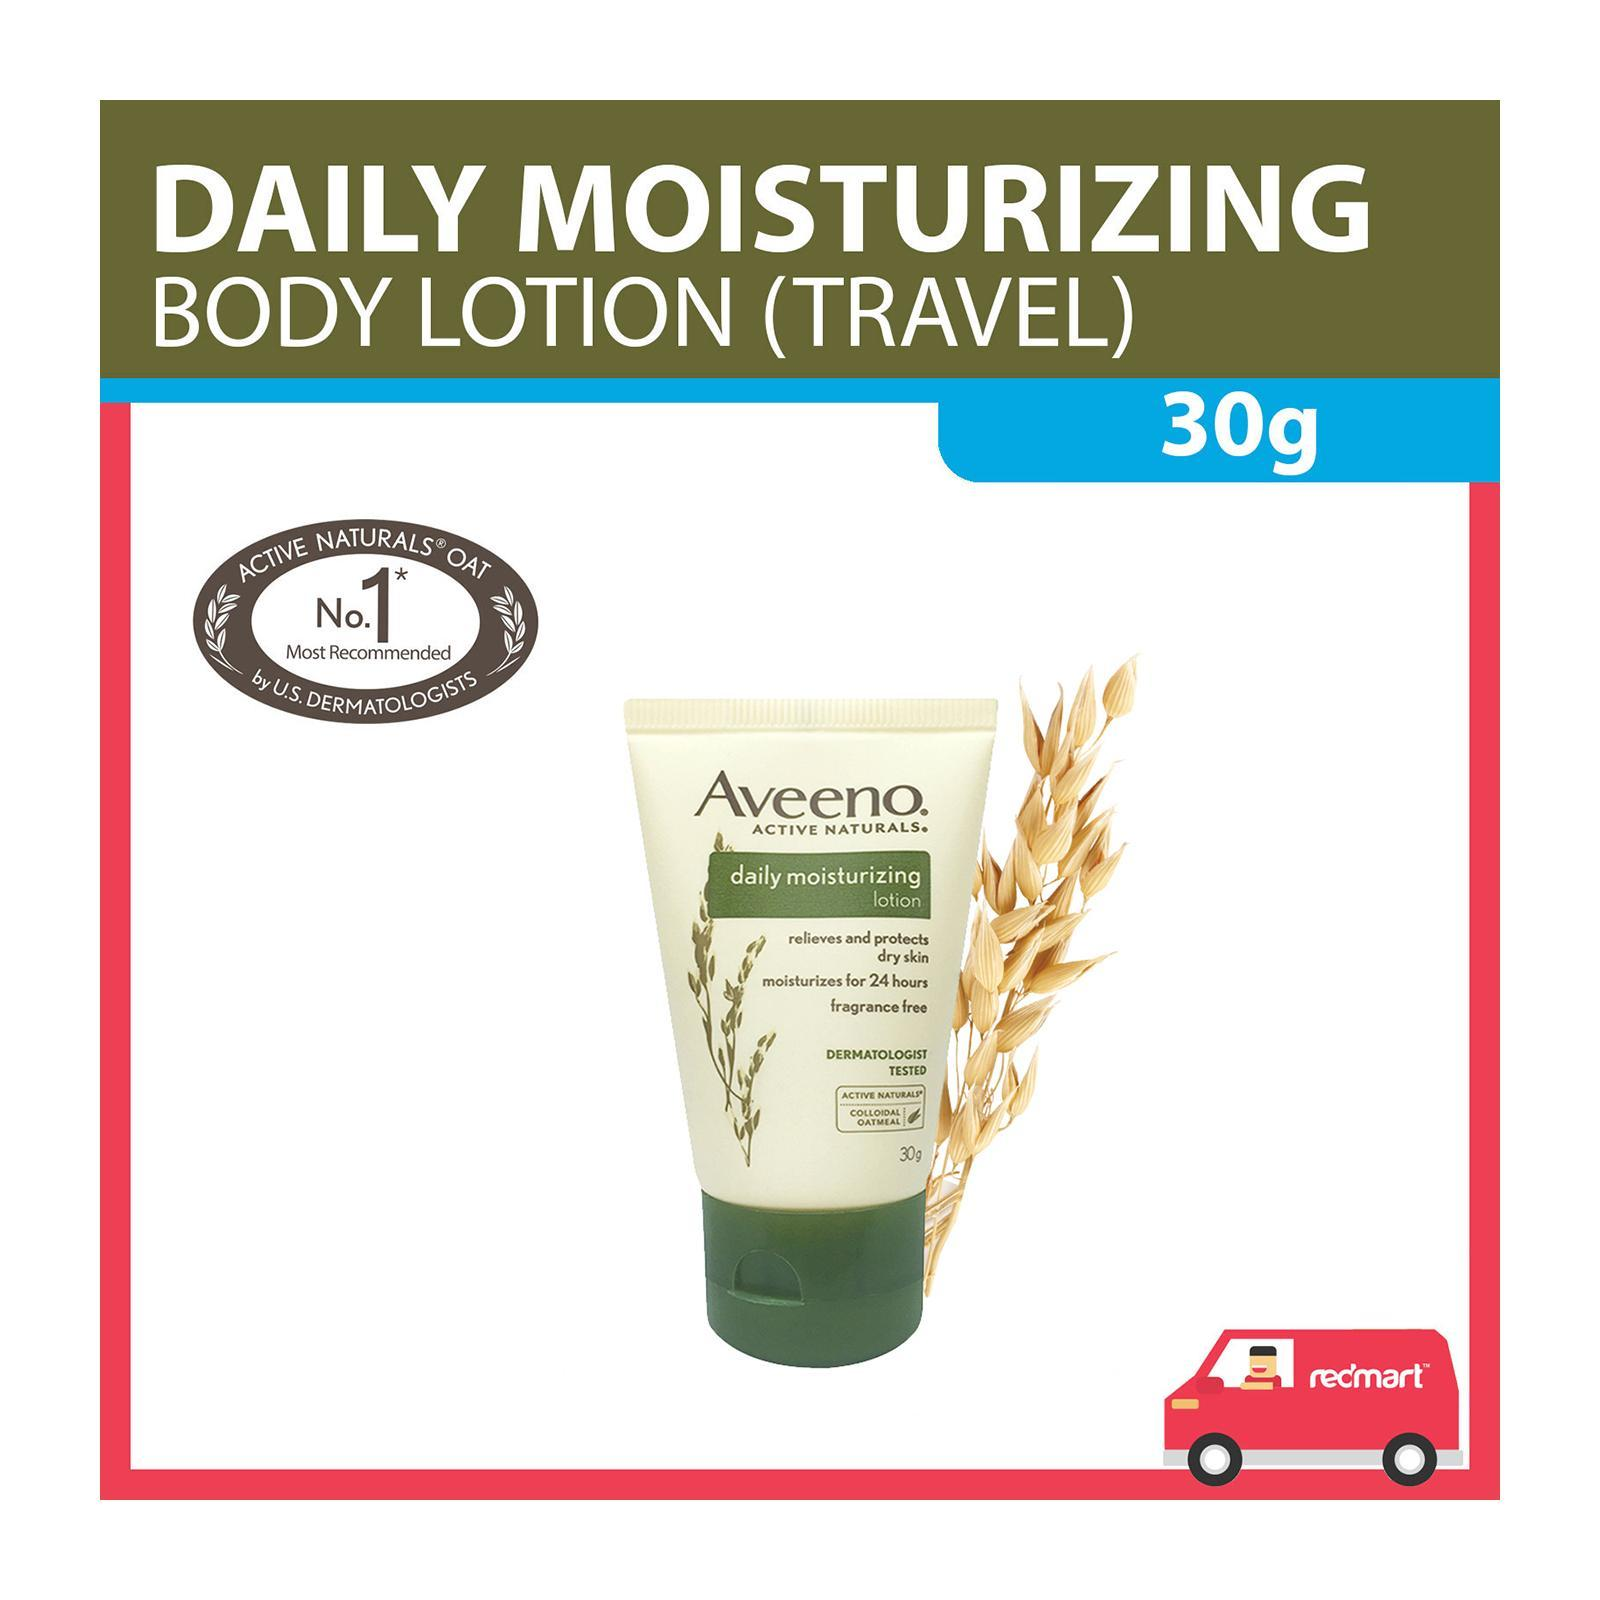 Aveeno Daily Moisturizing Lotion (Travel Sample Trial)